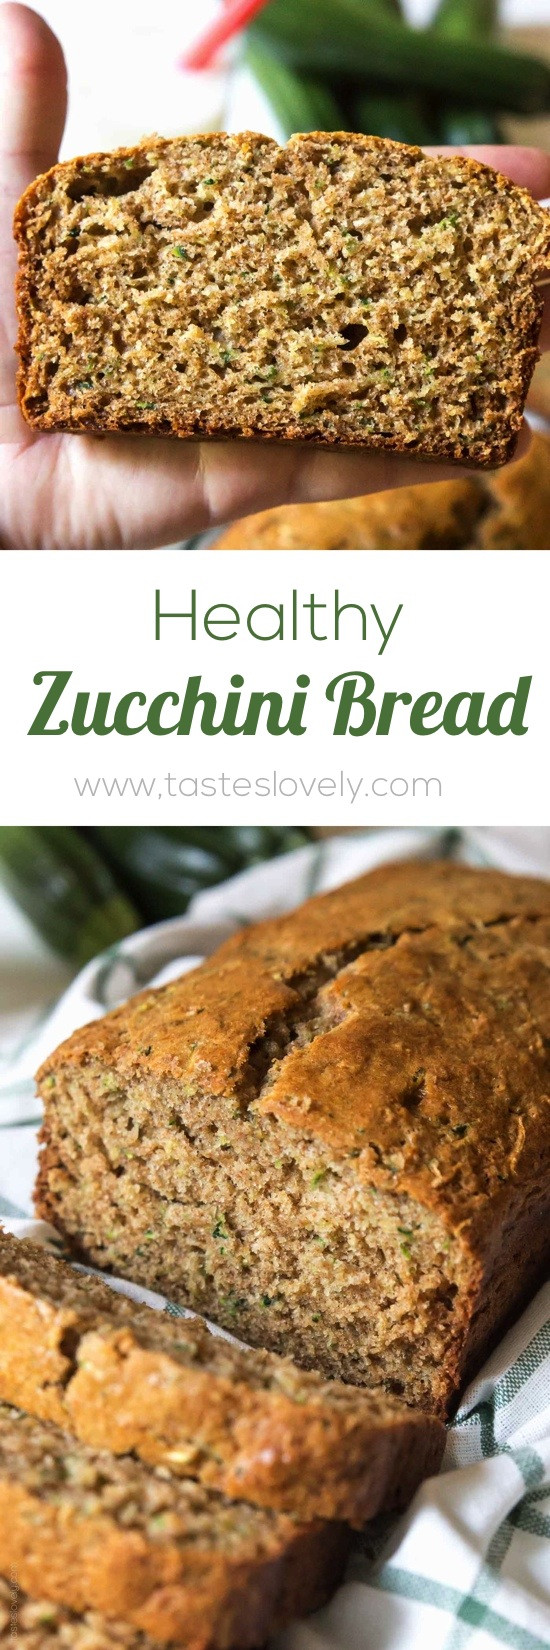 Healthy Zucchini Bread Recipe  Healthy Zucchini Bread — Tastes Lovely